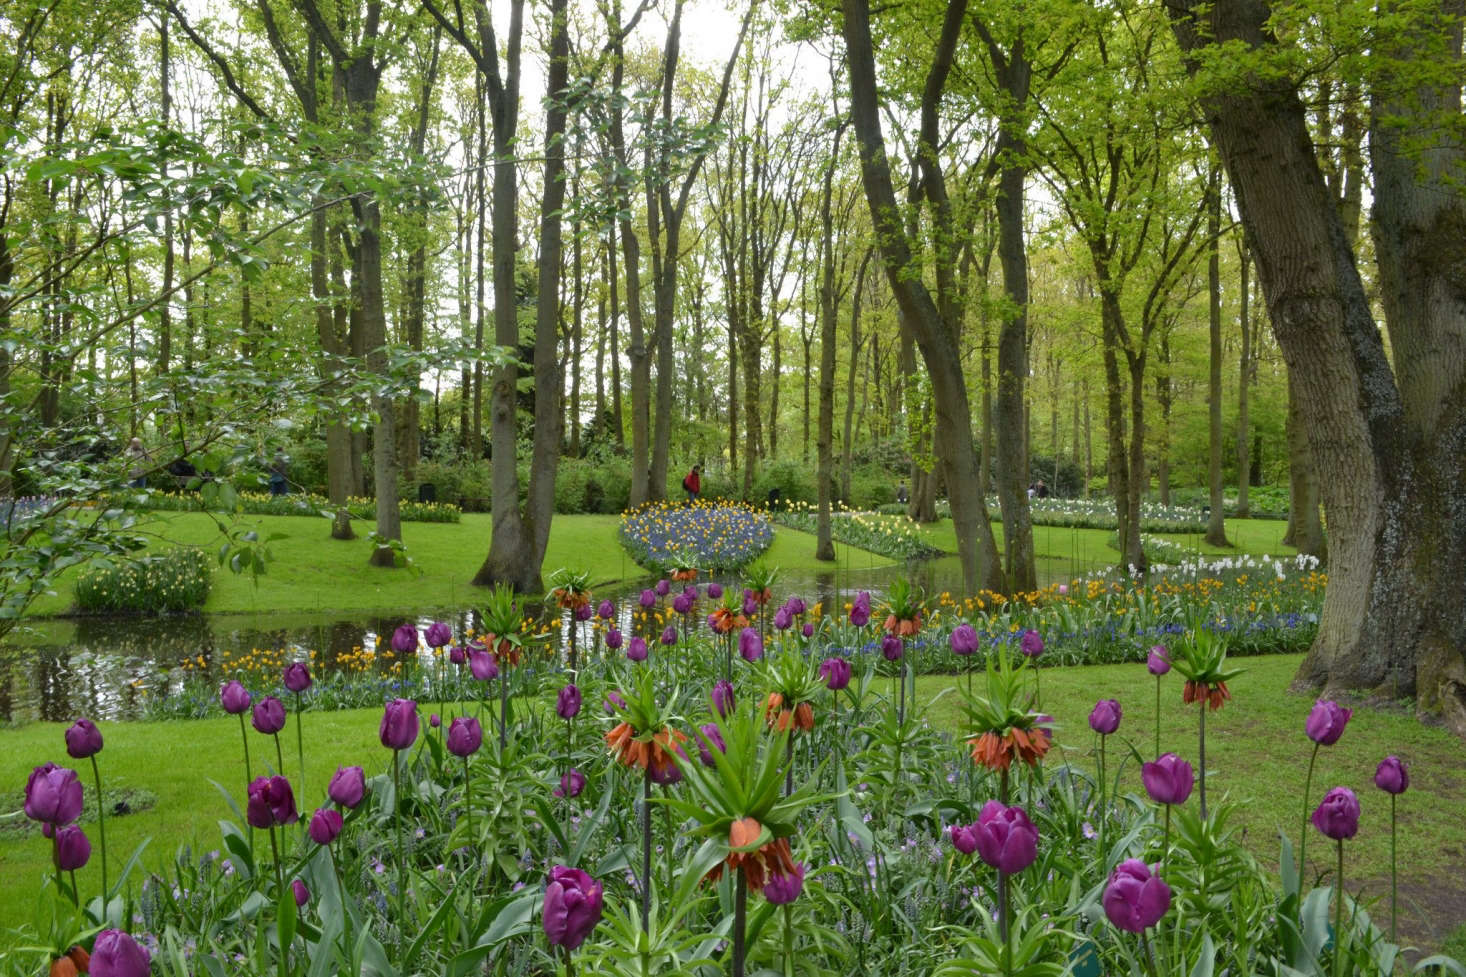 In the Keukenhof gardens in Lisse, Netherlands, fritillaria and tulips bloomen massein early May. Photograph byOlgavia Flickr, from Garden Ideas to Steal from the Netherlands.